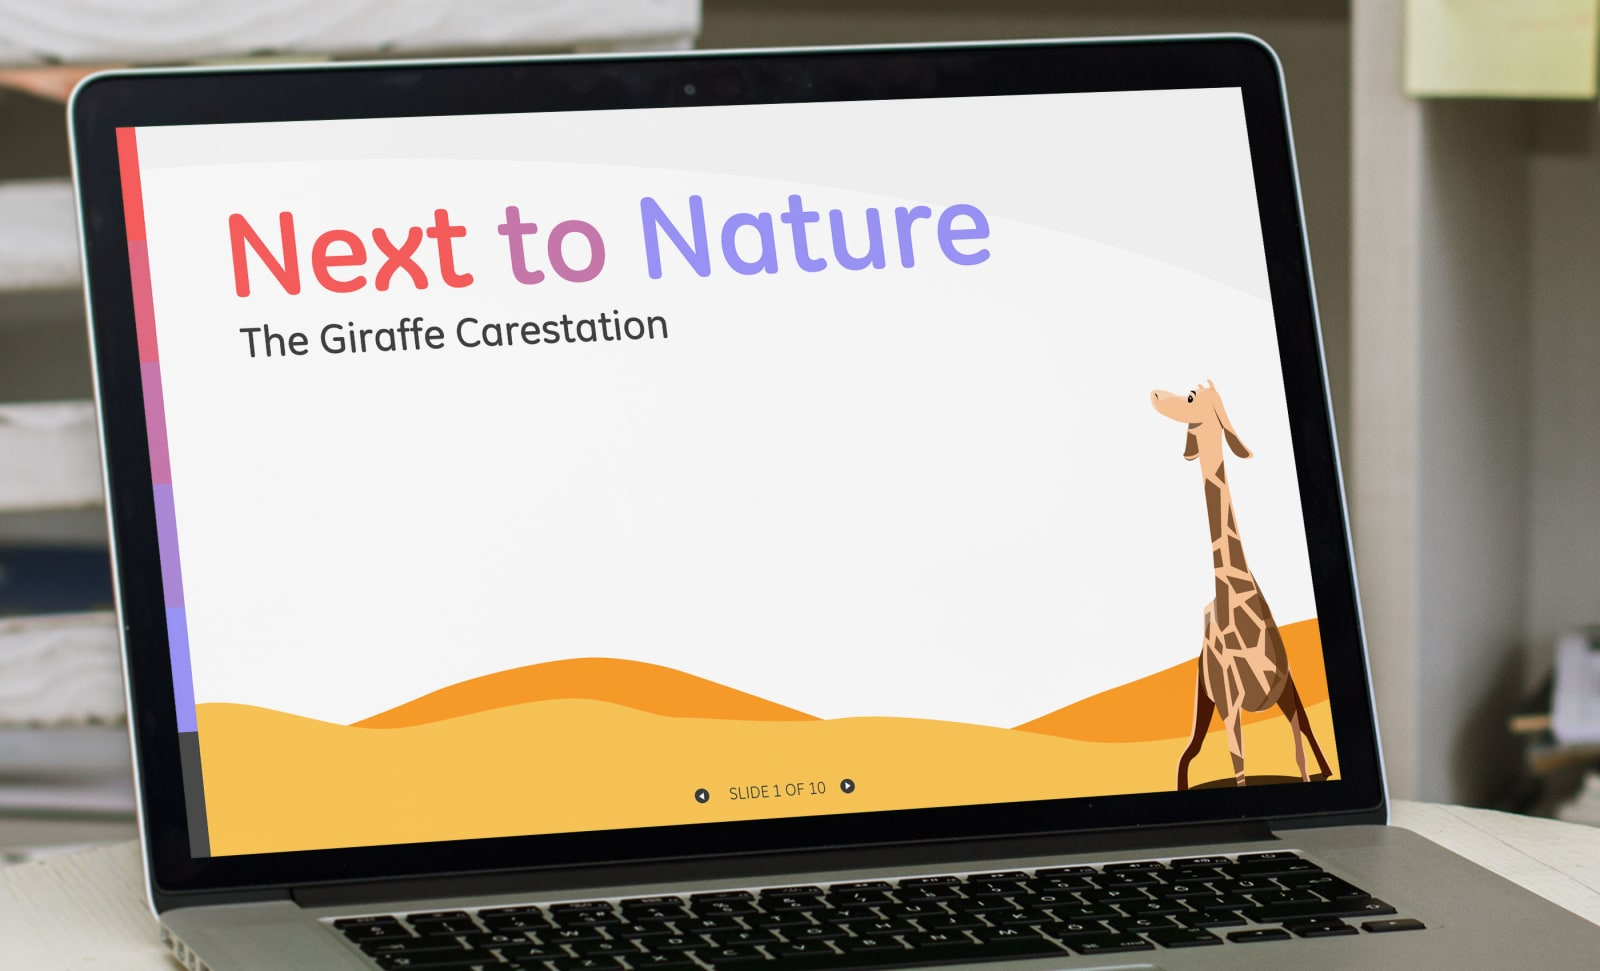 GE Giraffe Carestation Digital Presentation